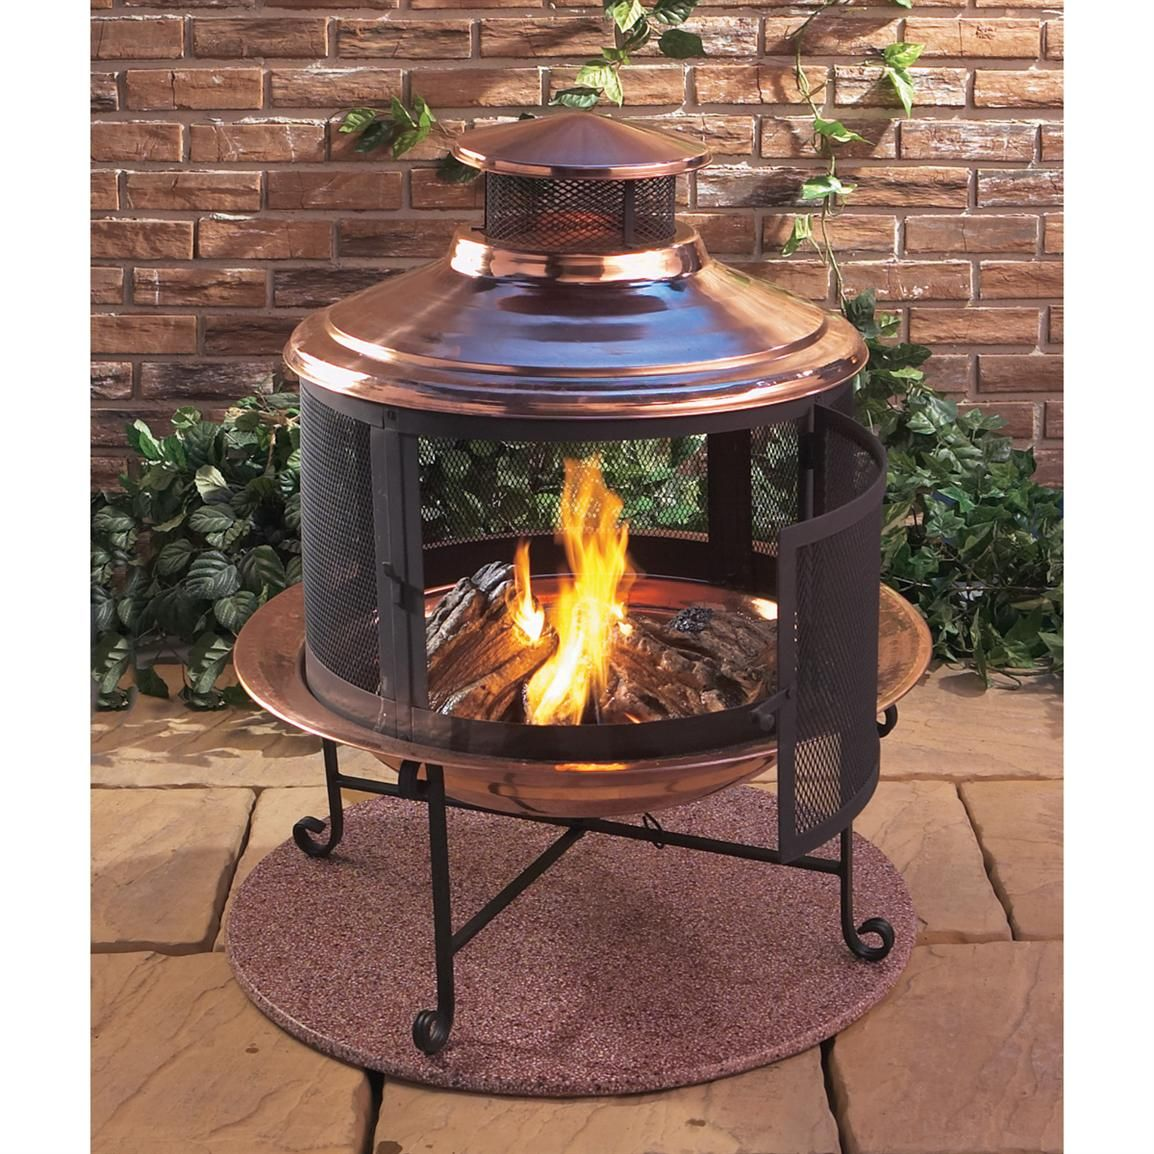 Convertible Fire Pit / Chiminea, Copper - Convertible Fire Pit / Chiminea, Copper Fire Pits Pinterest